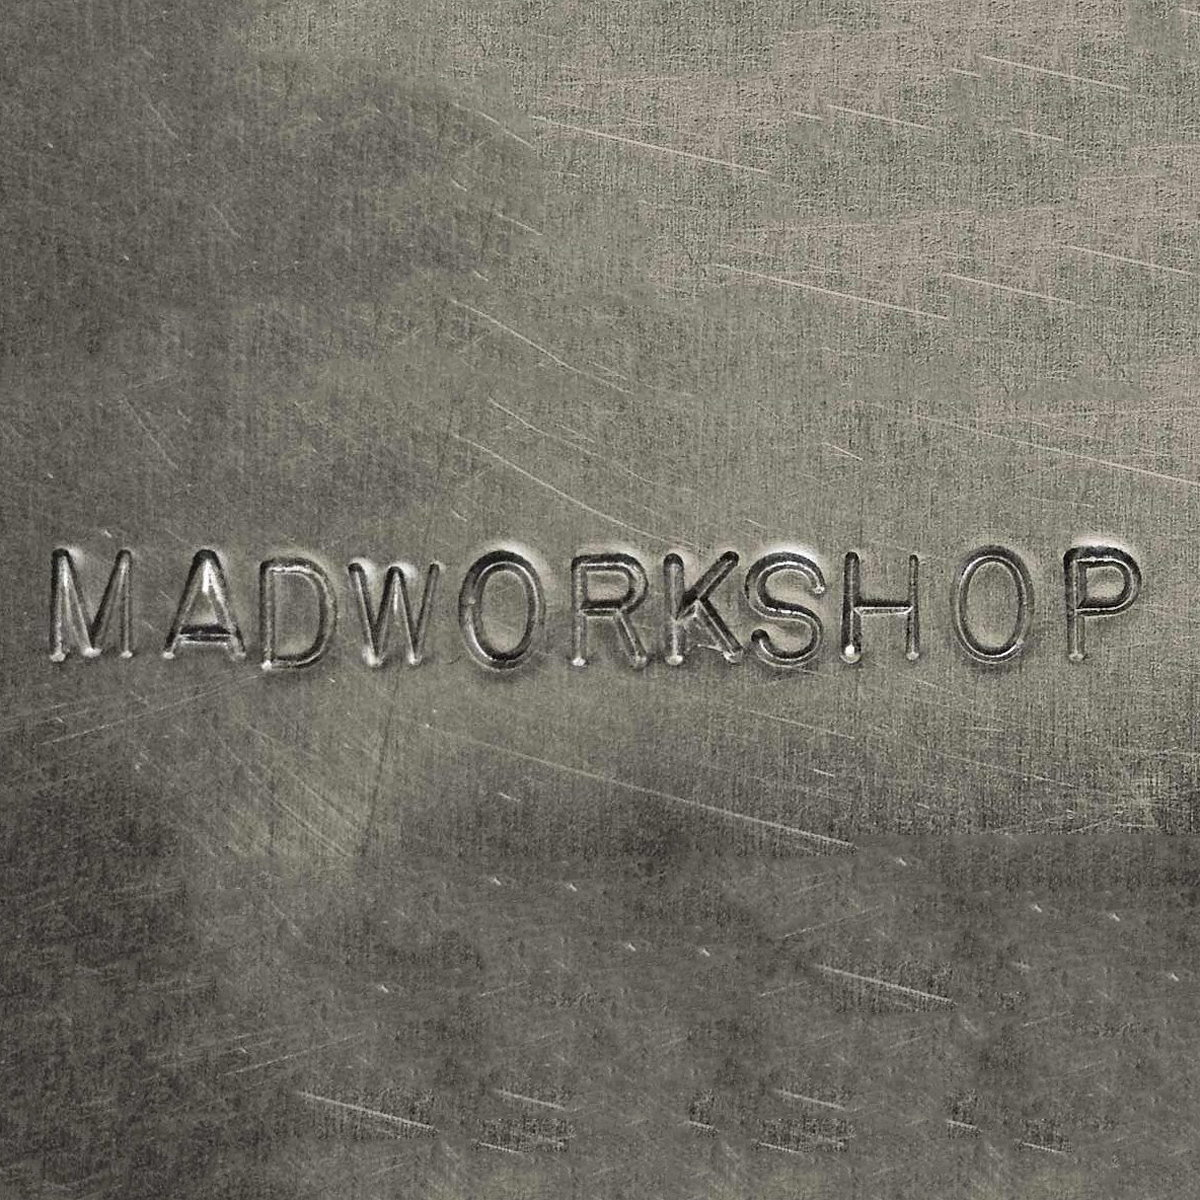 MADWORKSHOP Announces Open Call for 2017 Fellowship Program